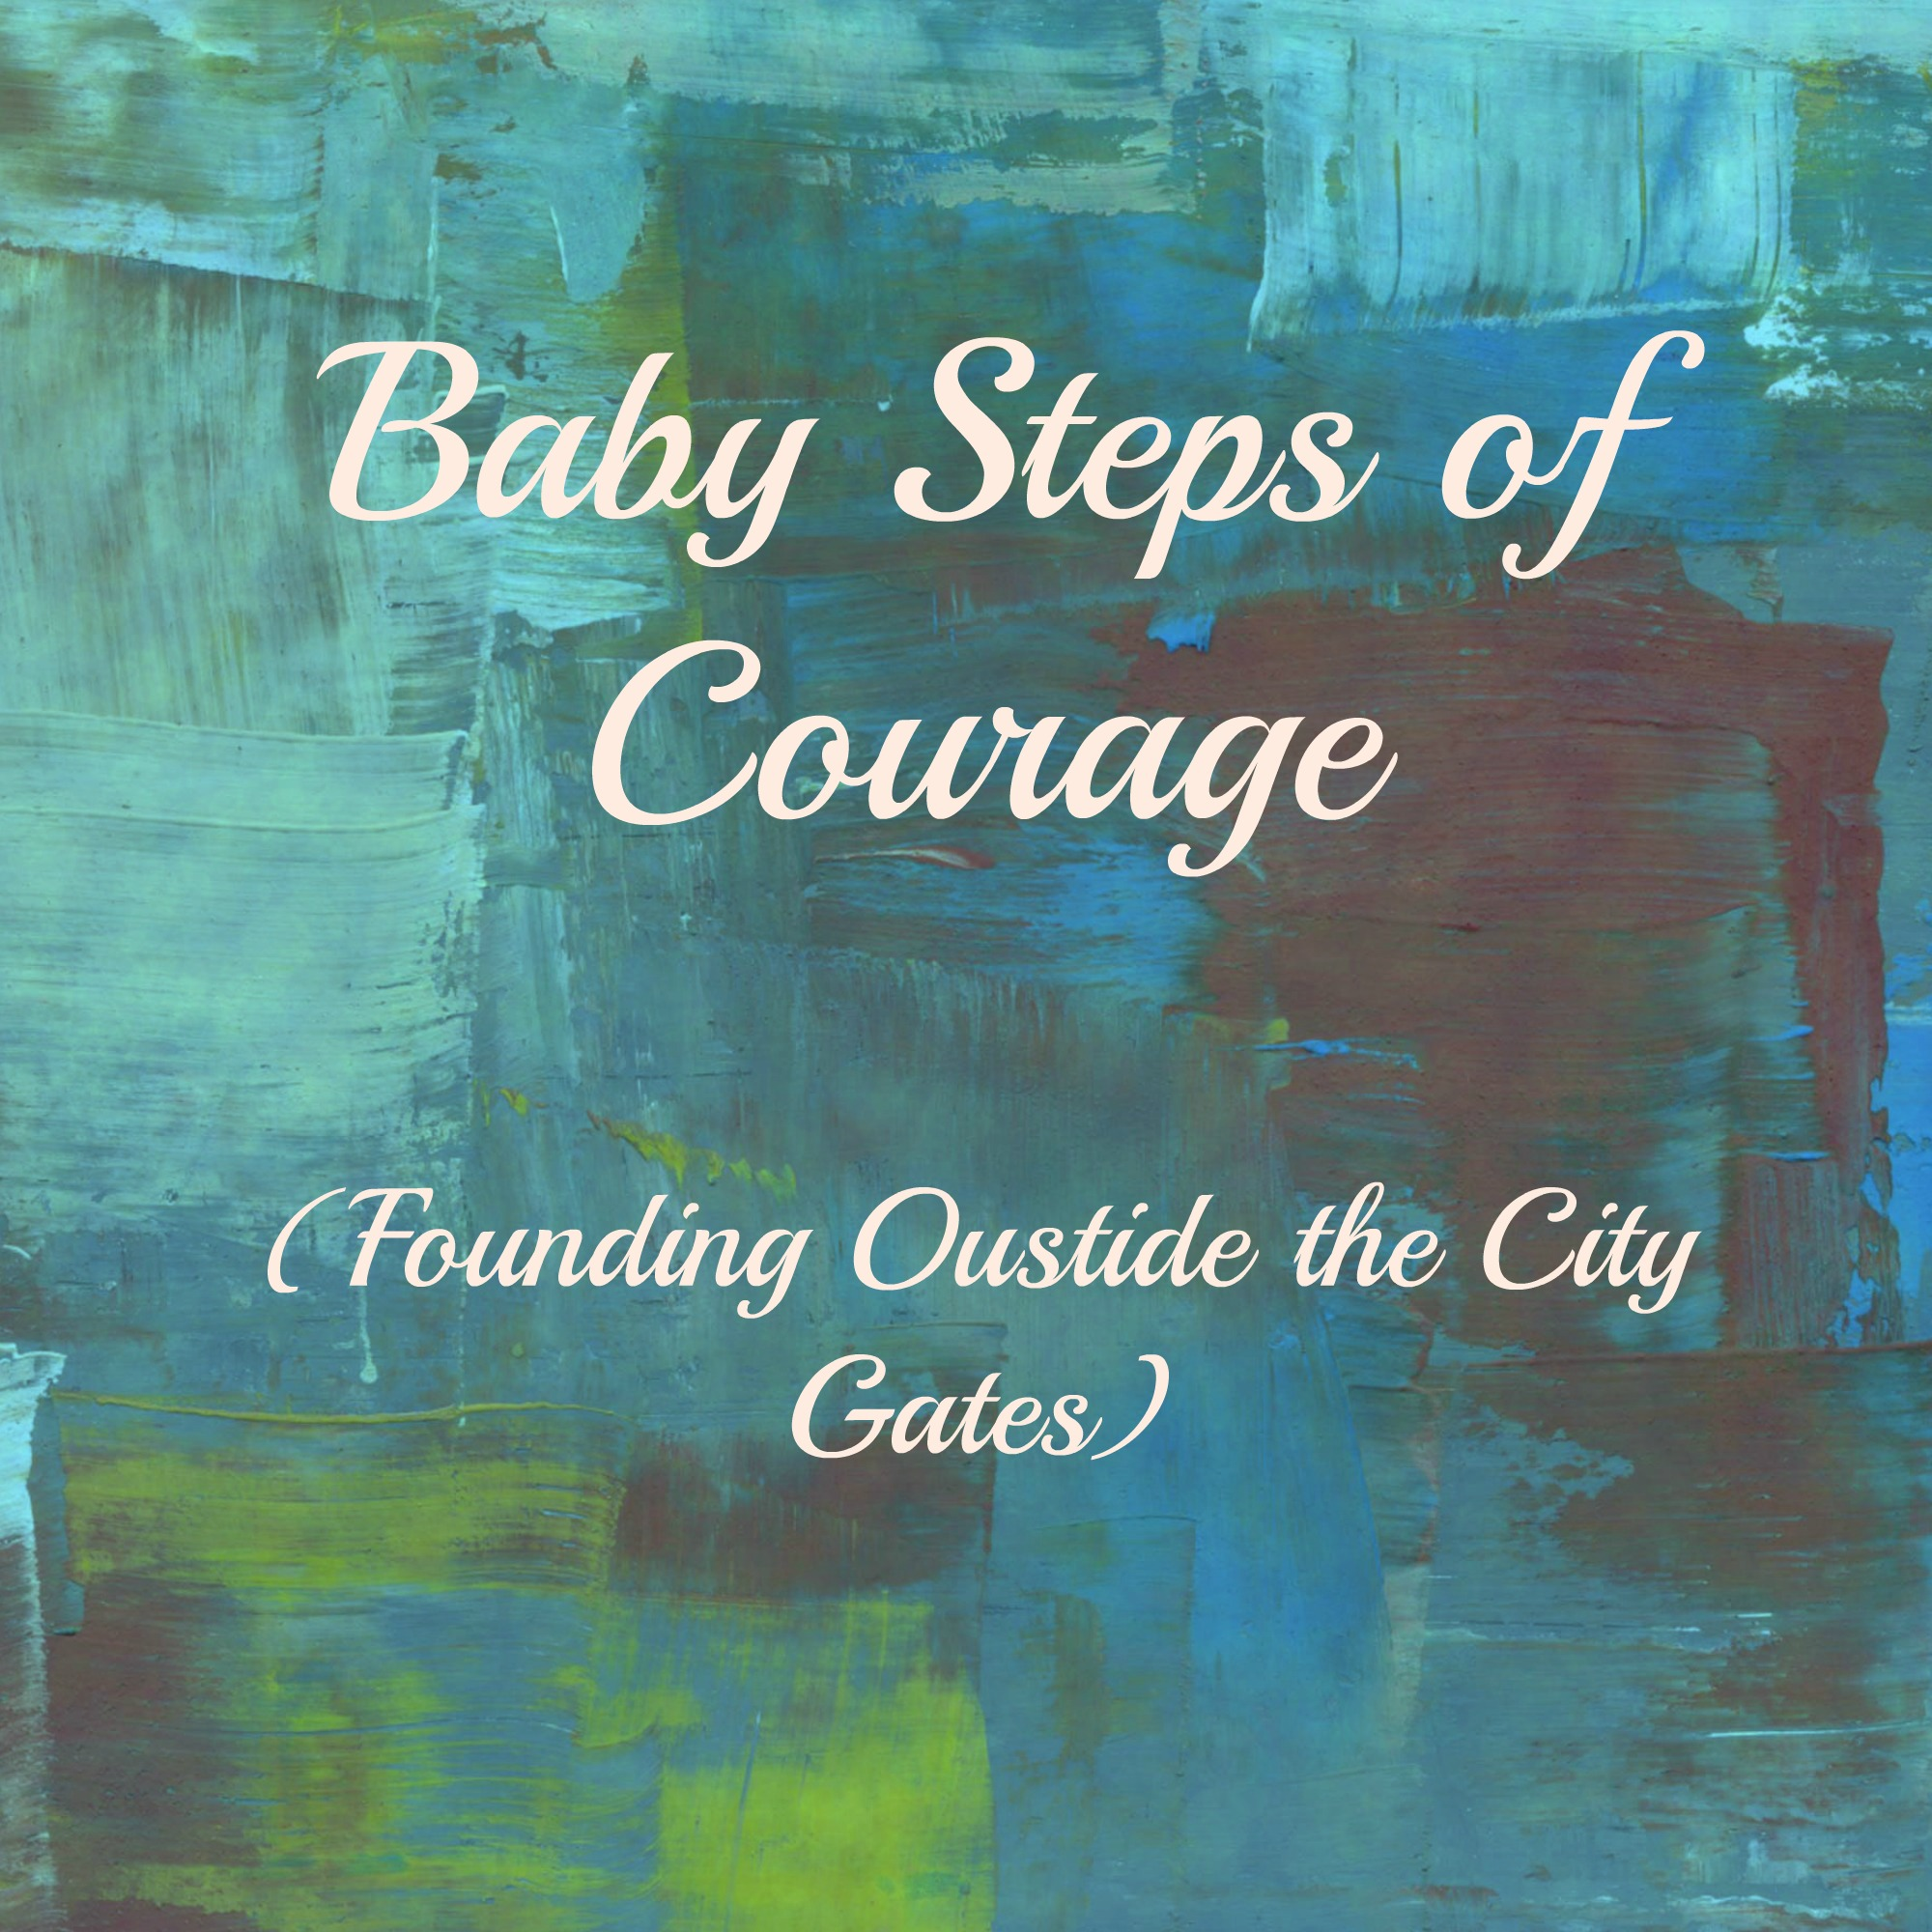 Baby Steps of Courage  (My Founding of: Outside the City Gates)